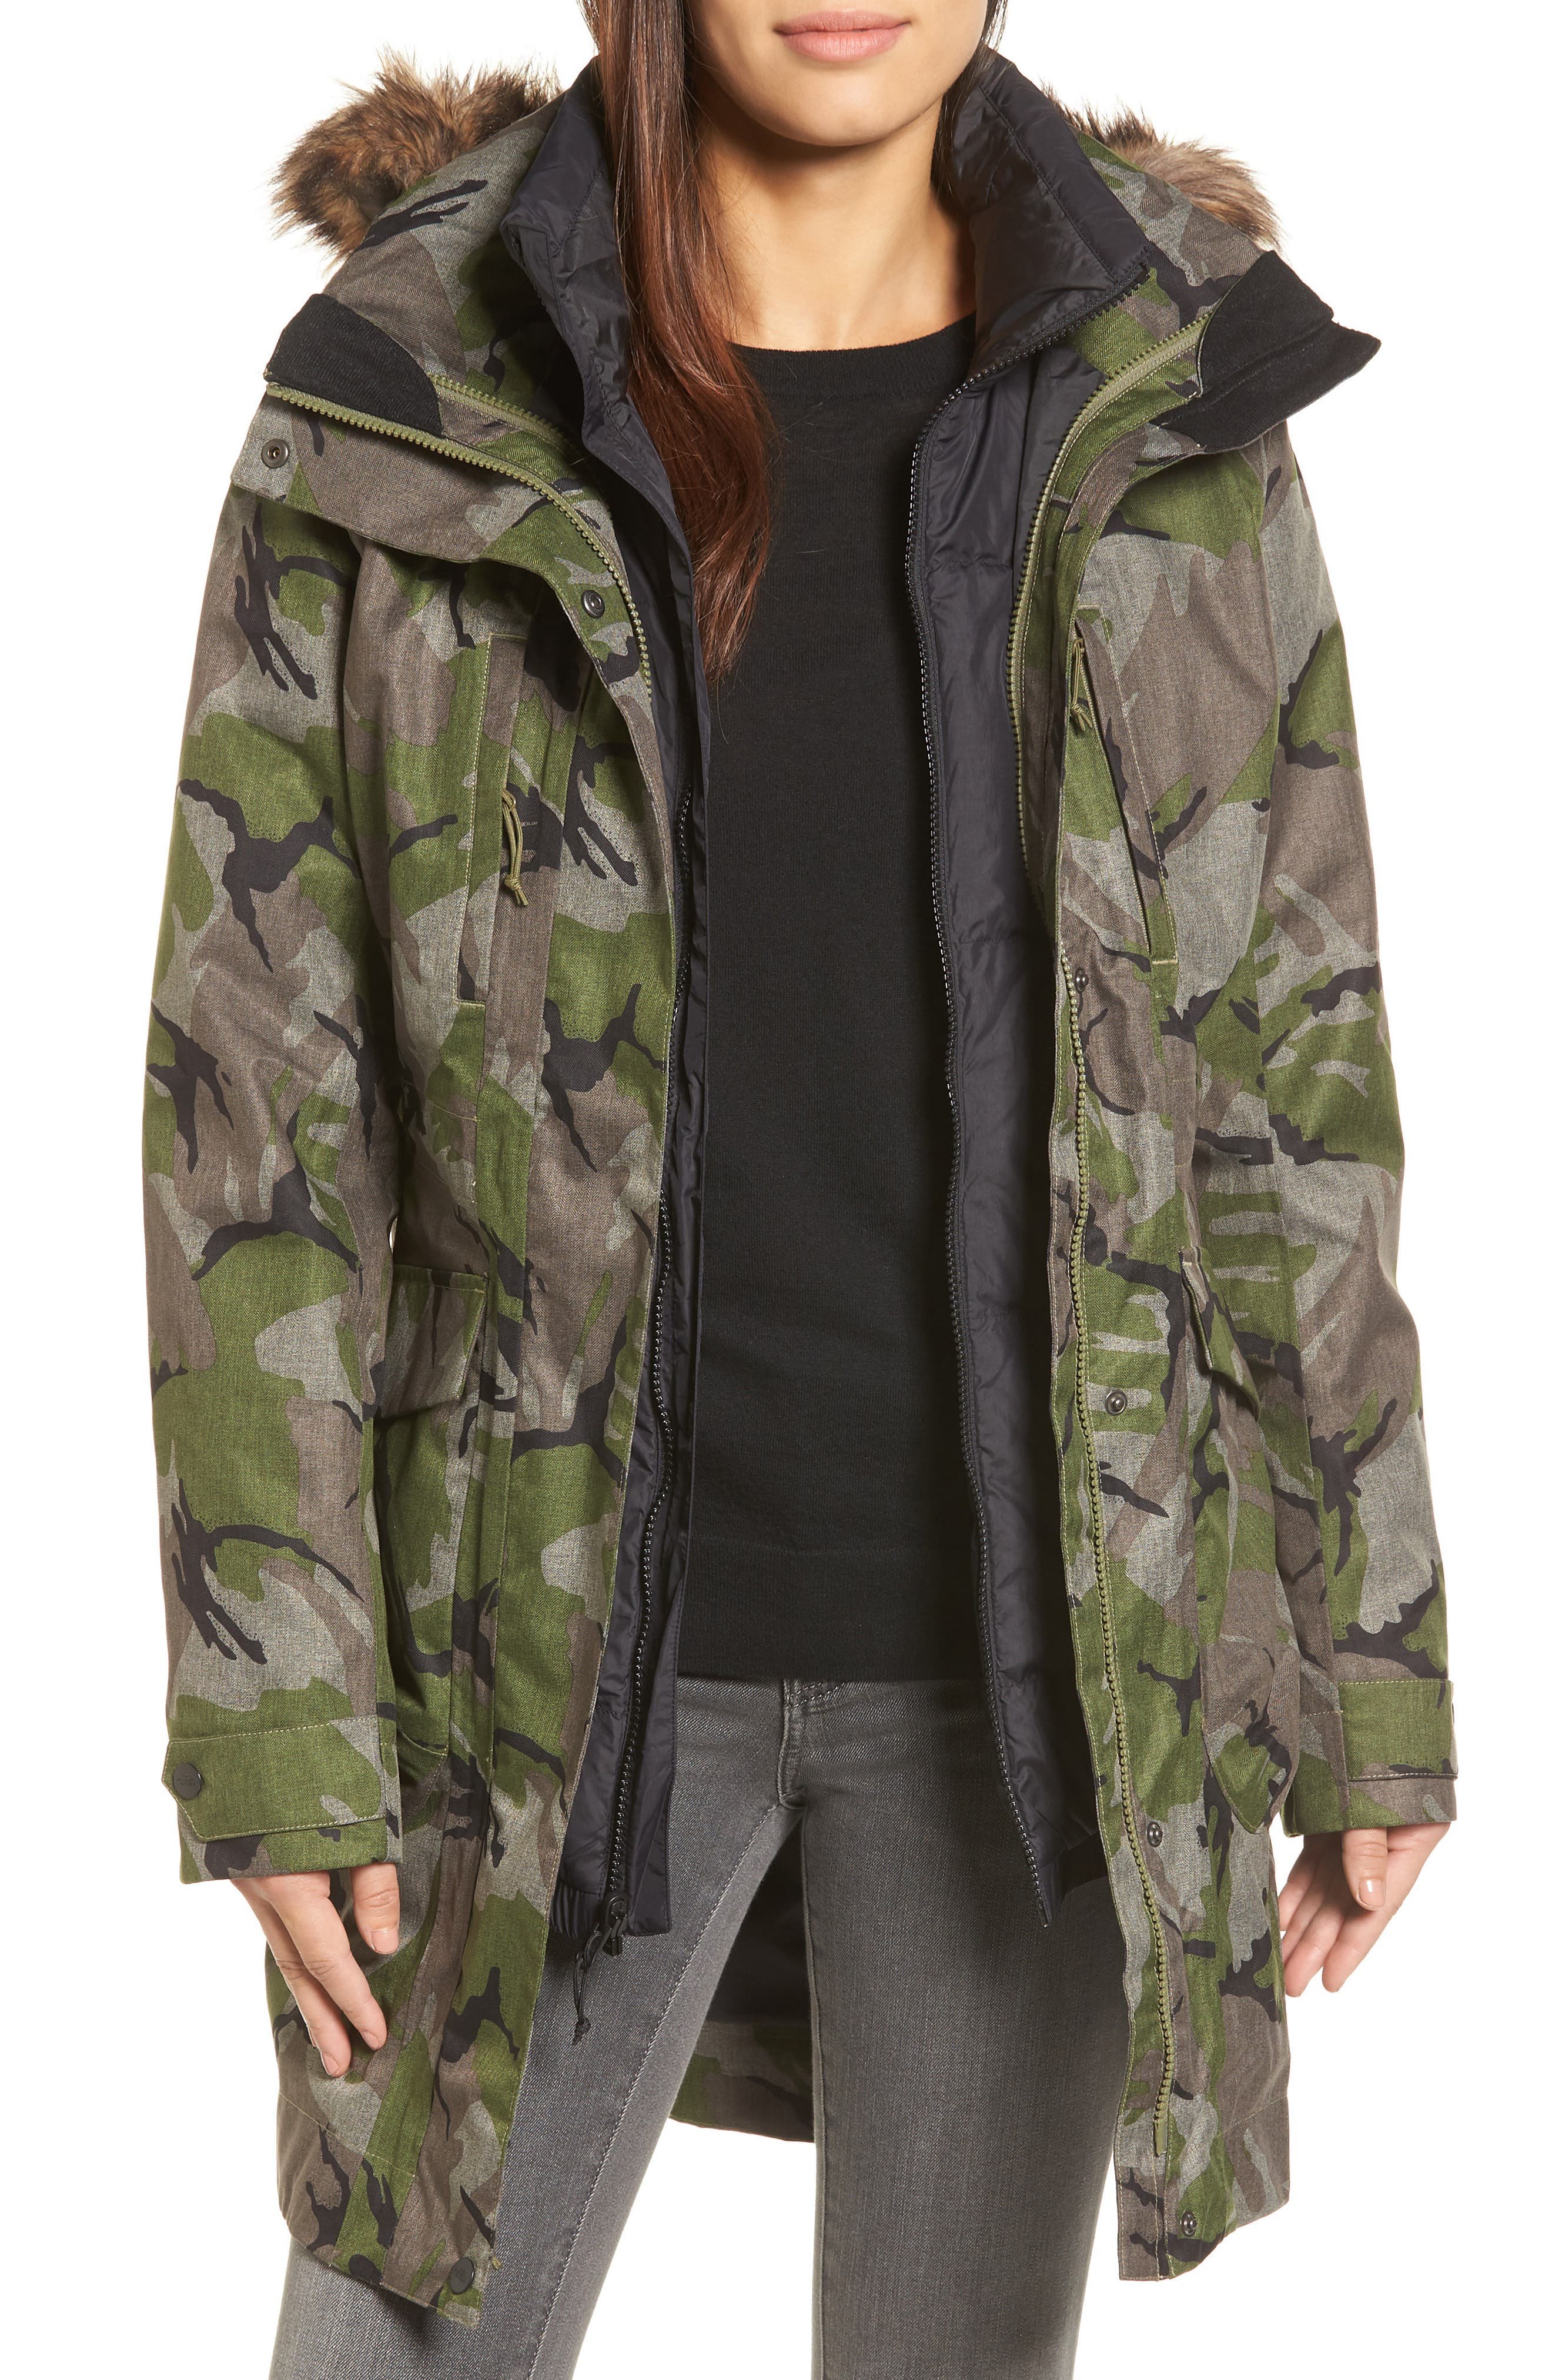 Outer Boroughs 3-in-1 TriClimate<sup>®</sup> Waterproof Jacket with Faux Fur Trim,                             Main thumbnail 1, color,                             Burnt Olive Green Disrupt Camo